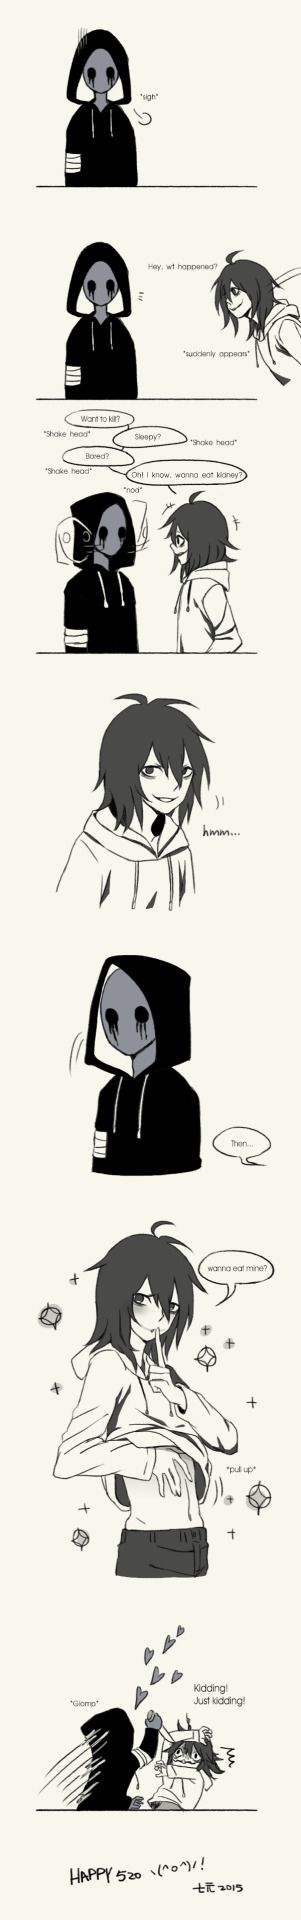 Eyeless Jack | Tumblr XD poor Jeff even I saw this coming